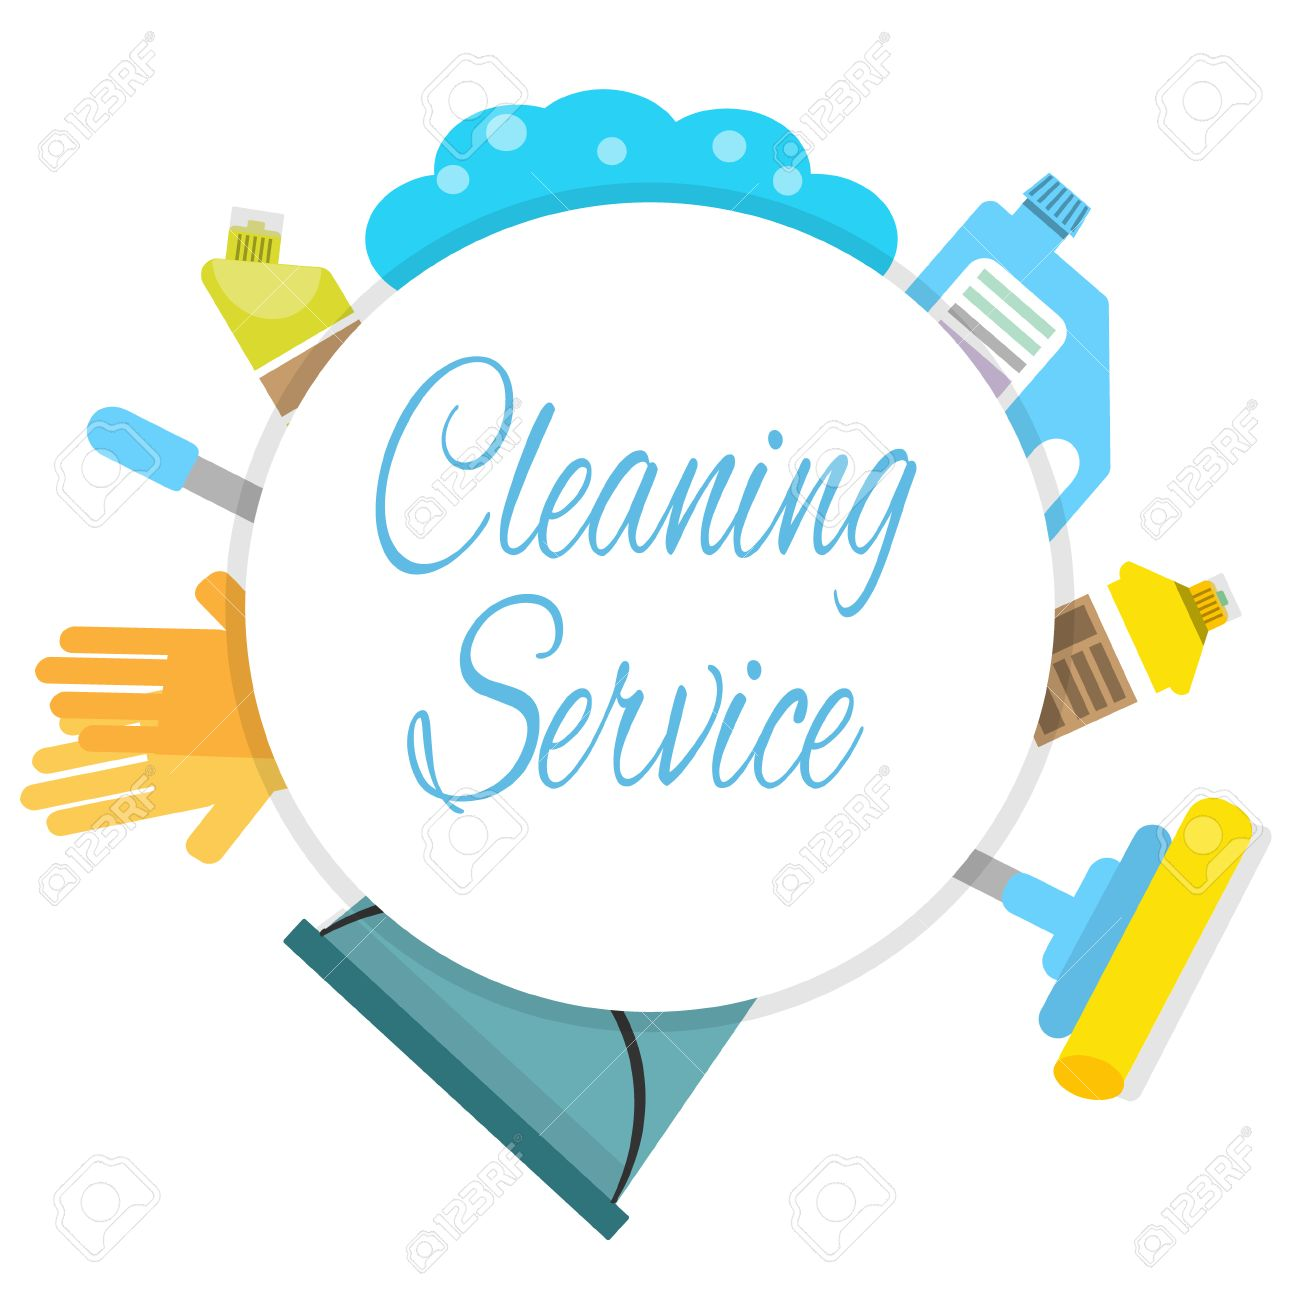 Cleaning Company Logo Concept Royalty Free Cliparts Vectors And Stock Illustration Image 73324975